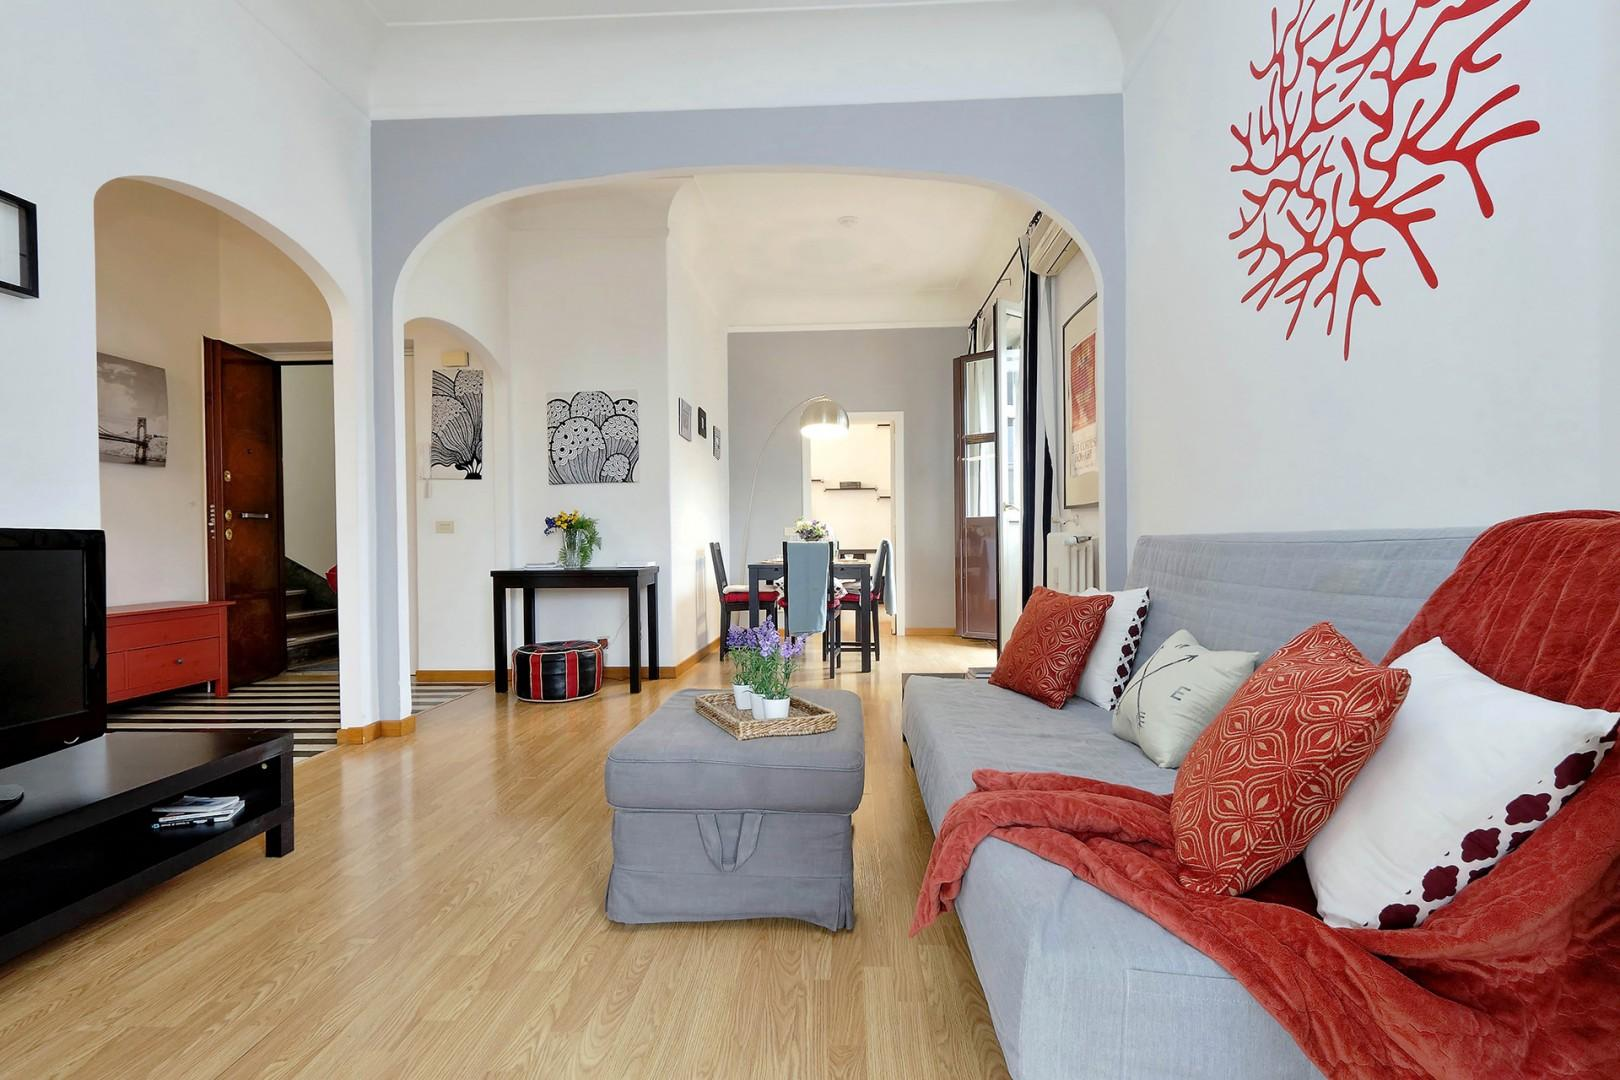 Two sets of archways frame the living room.